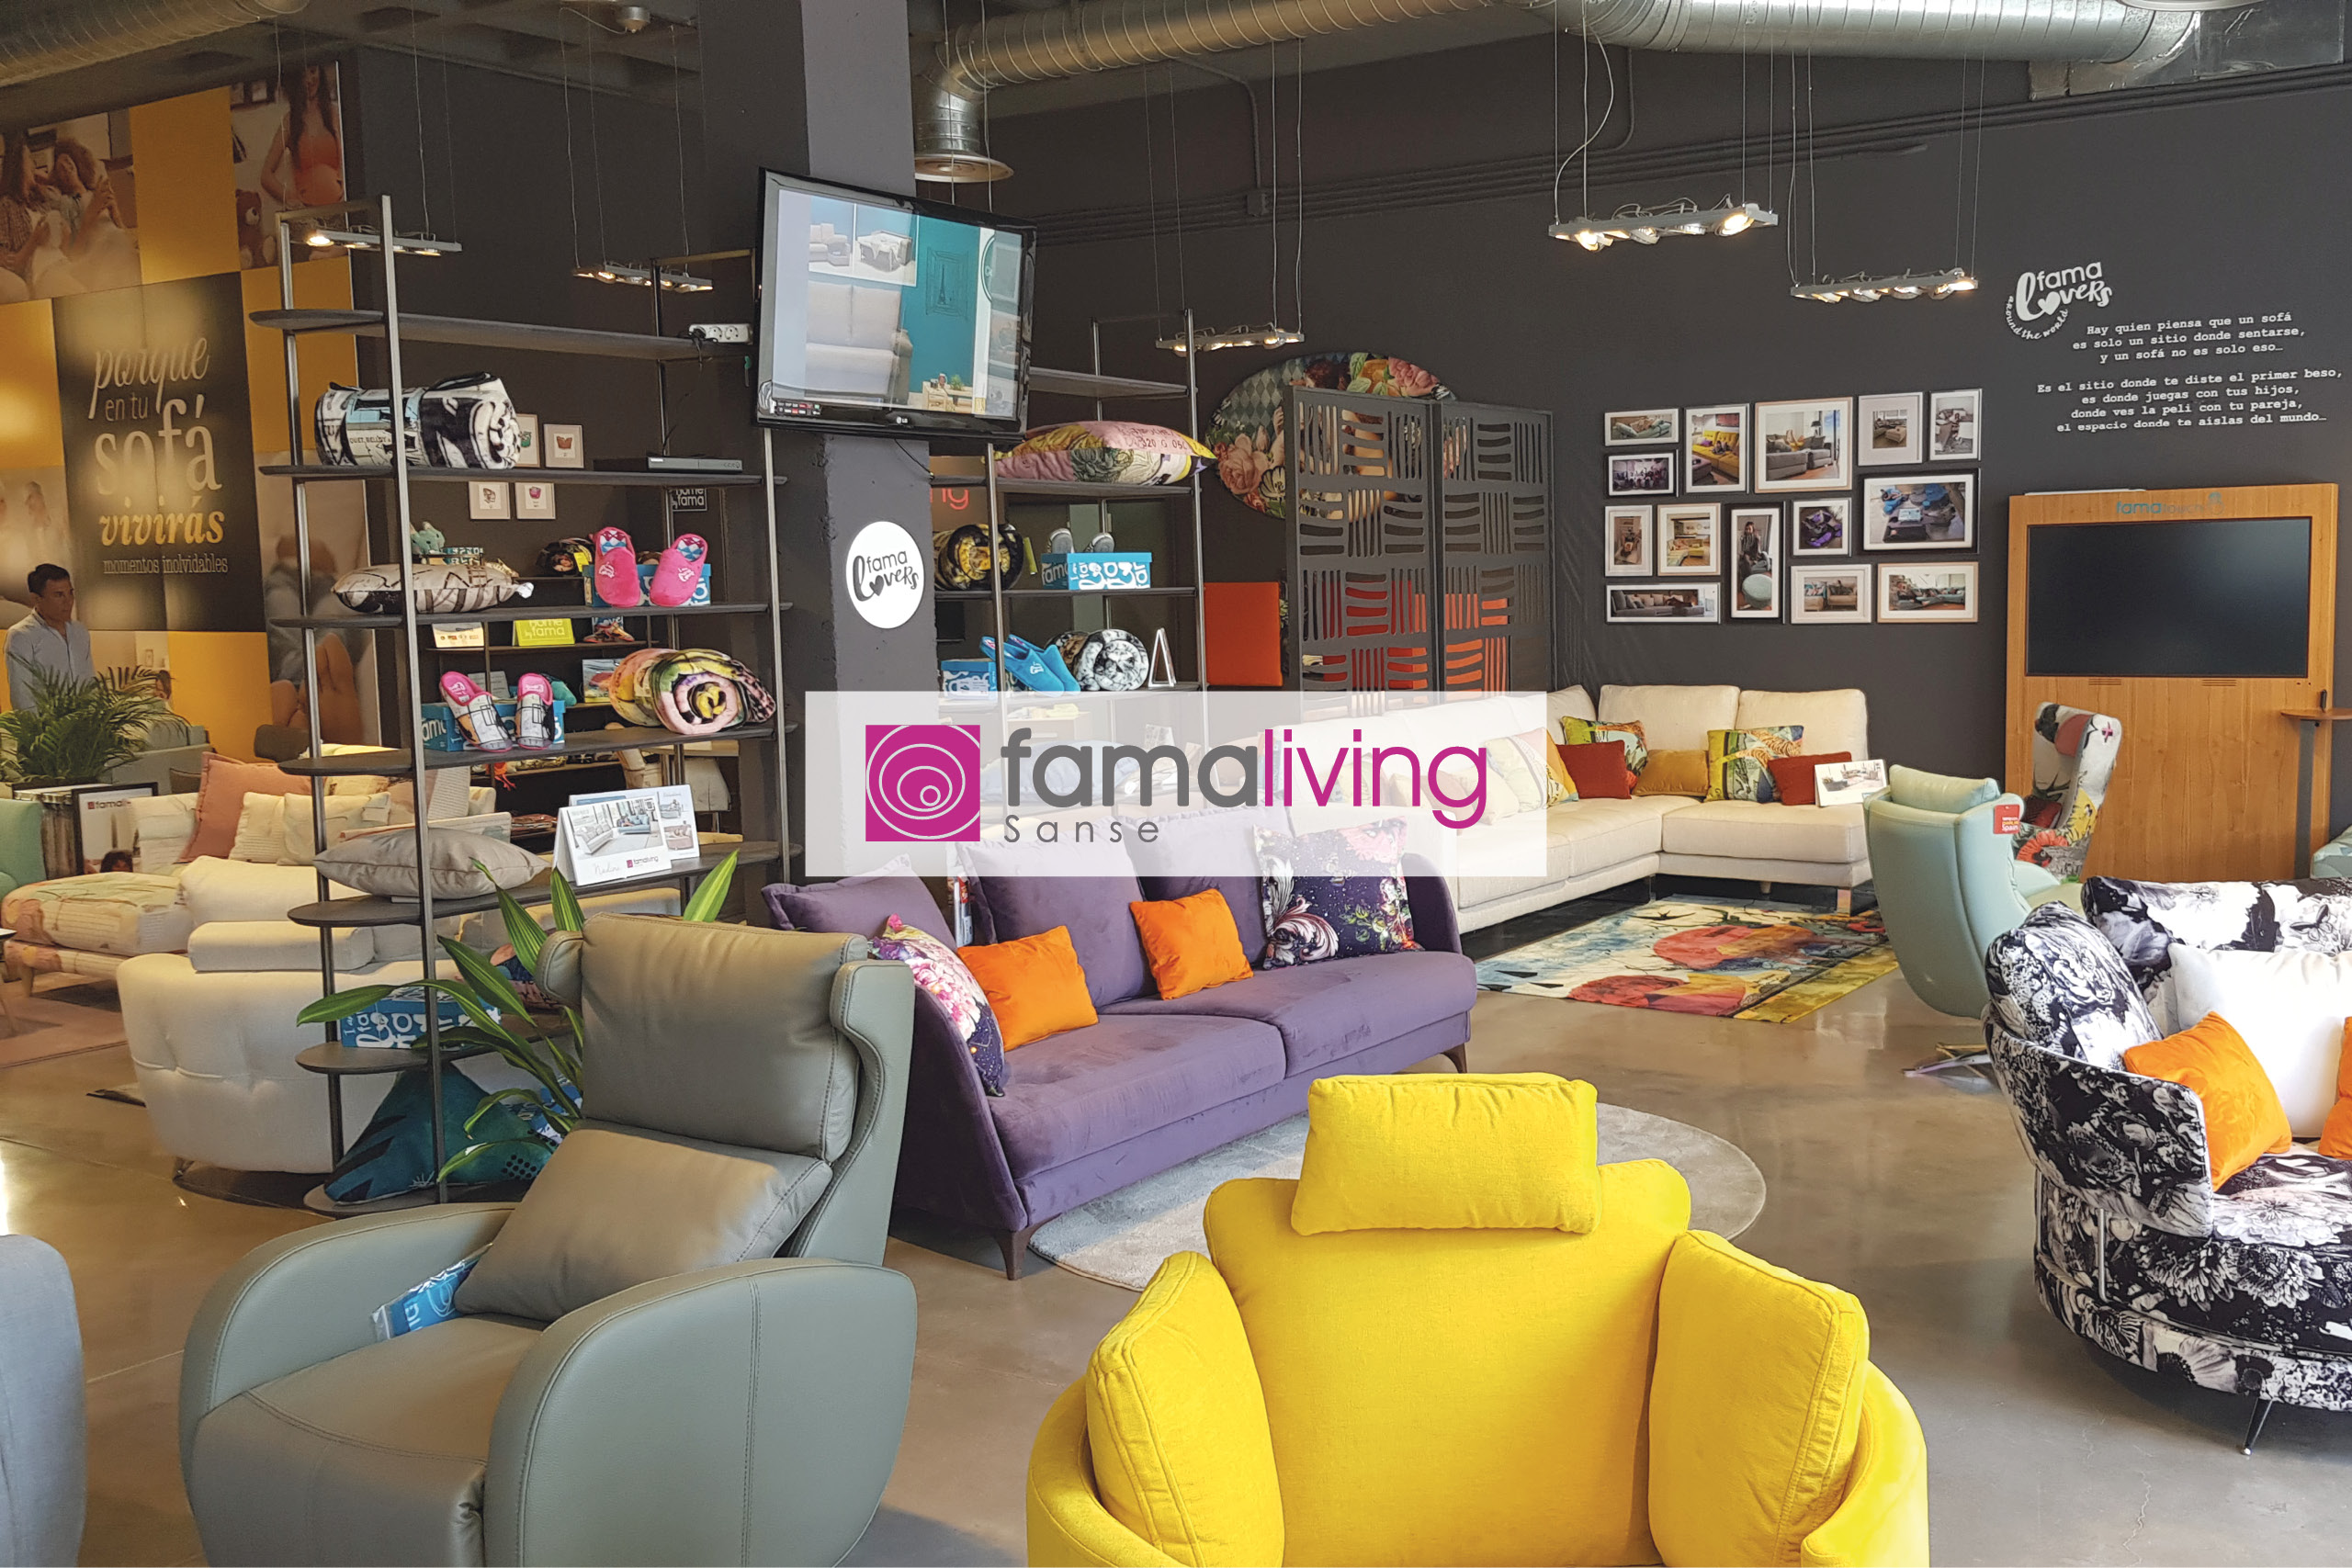 https://www.famaliving.com/madridsanse-en